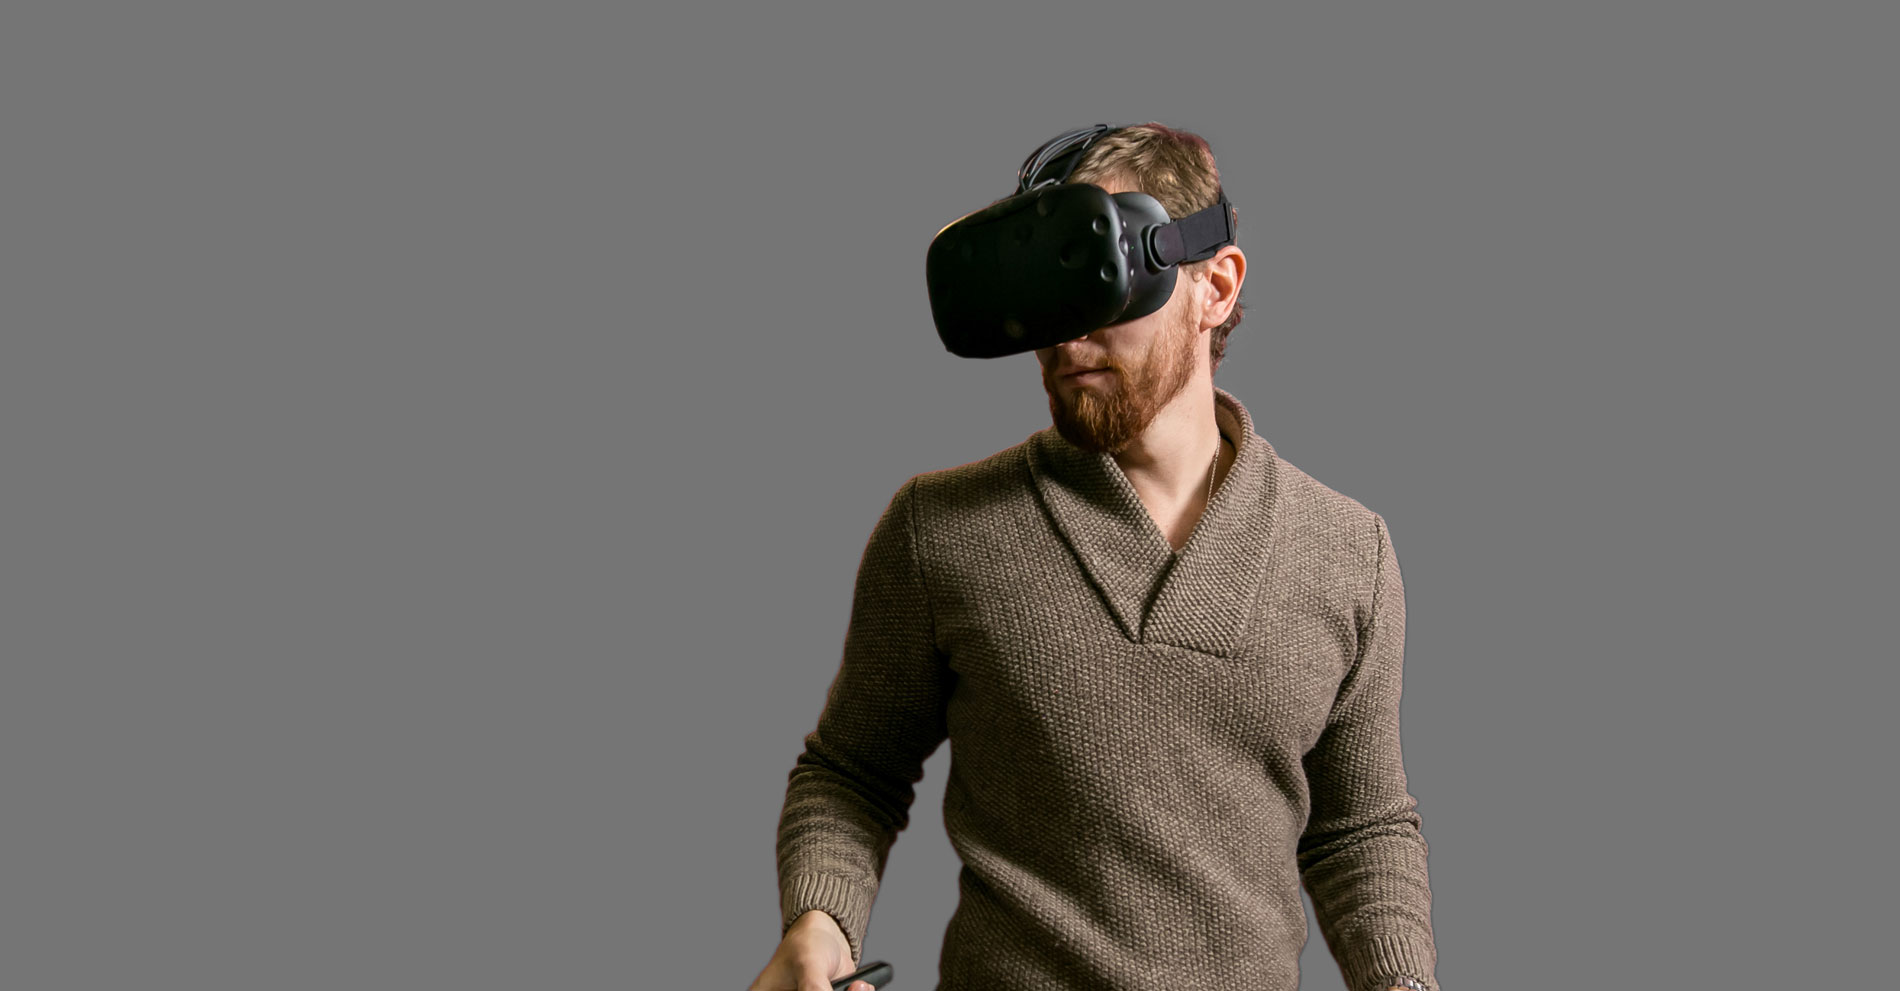 A man who does vr modeling.